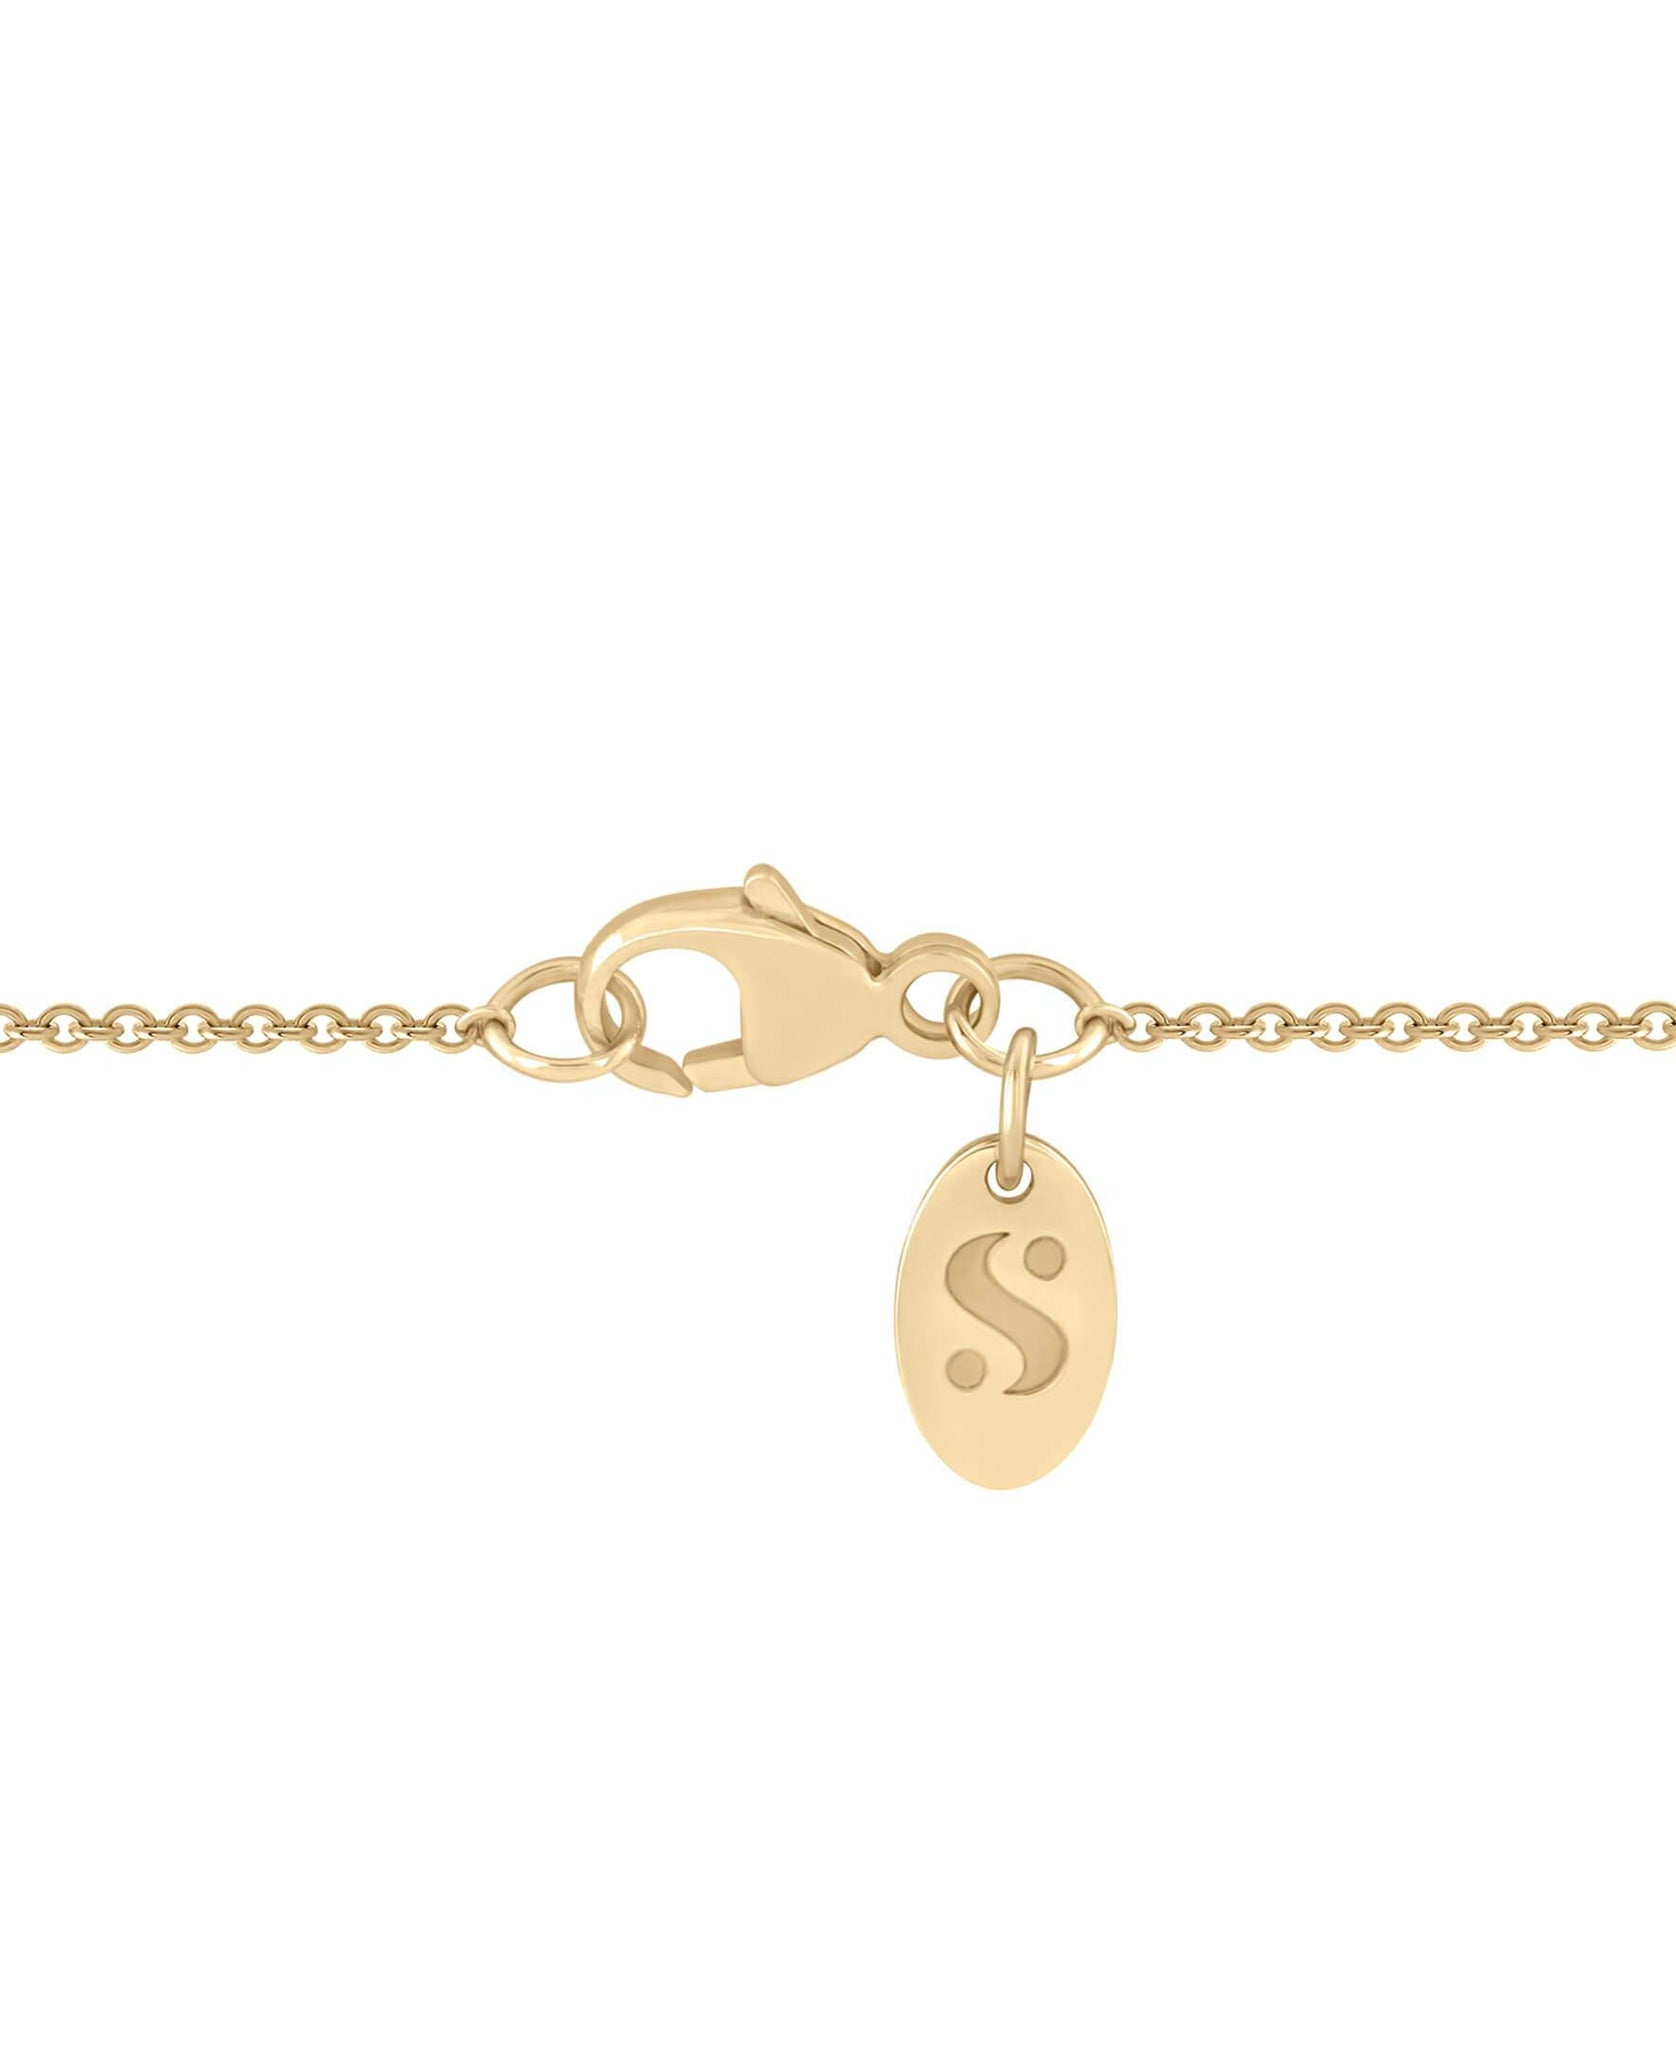 'Lucky' ID Necklace - Serena Williams Jewelry